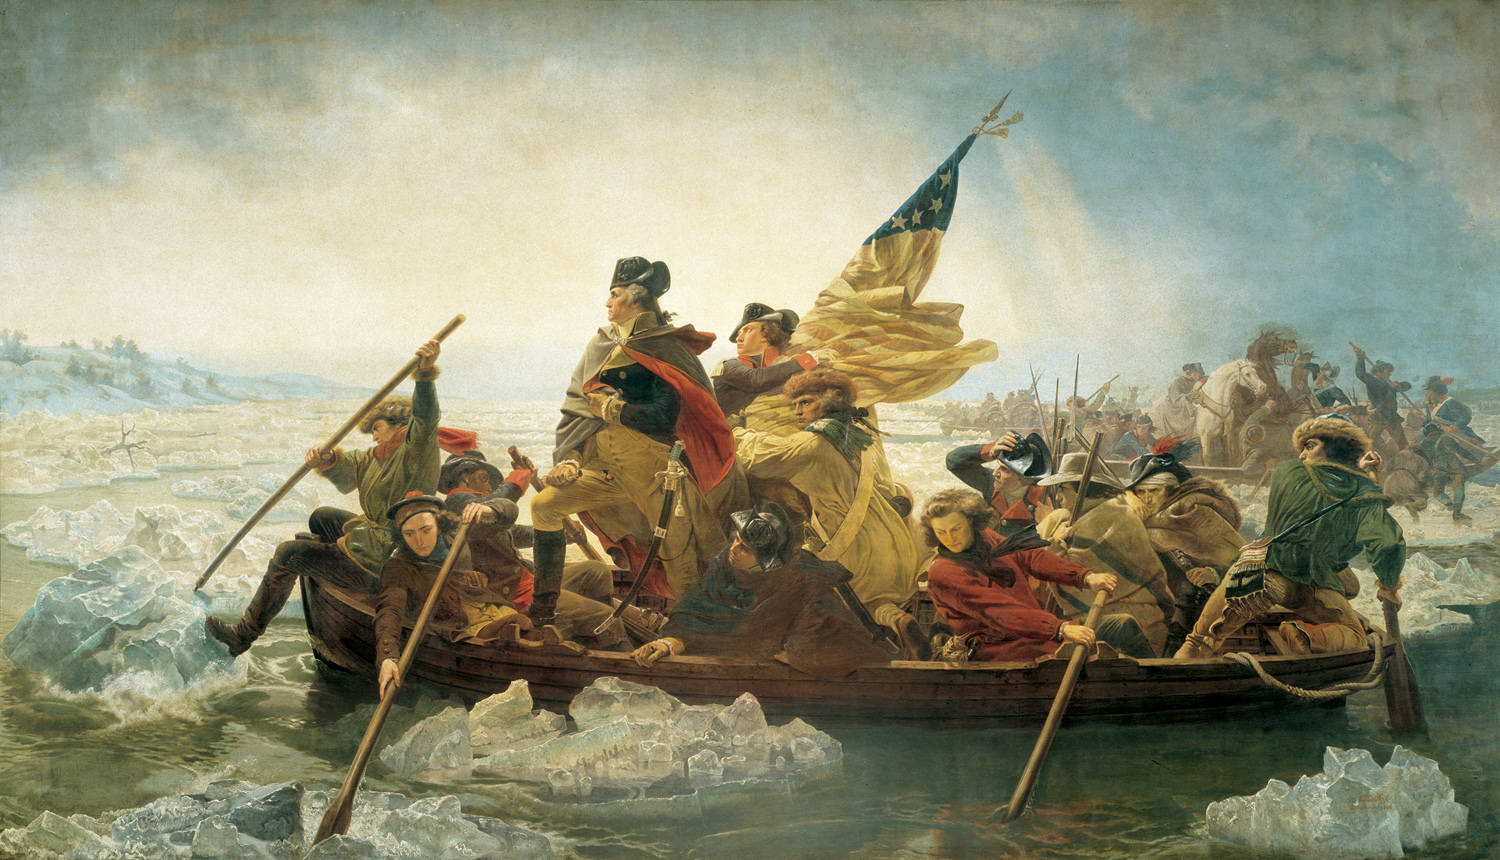 The Life and Events of George Washington